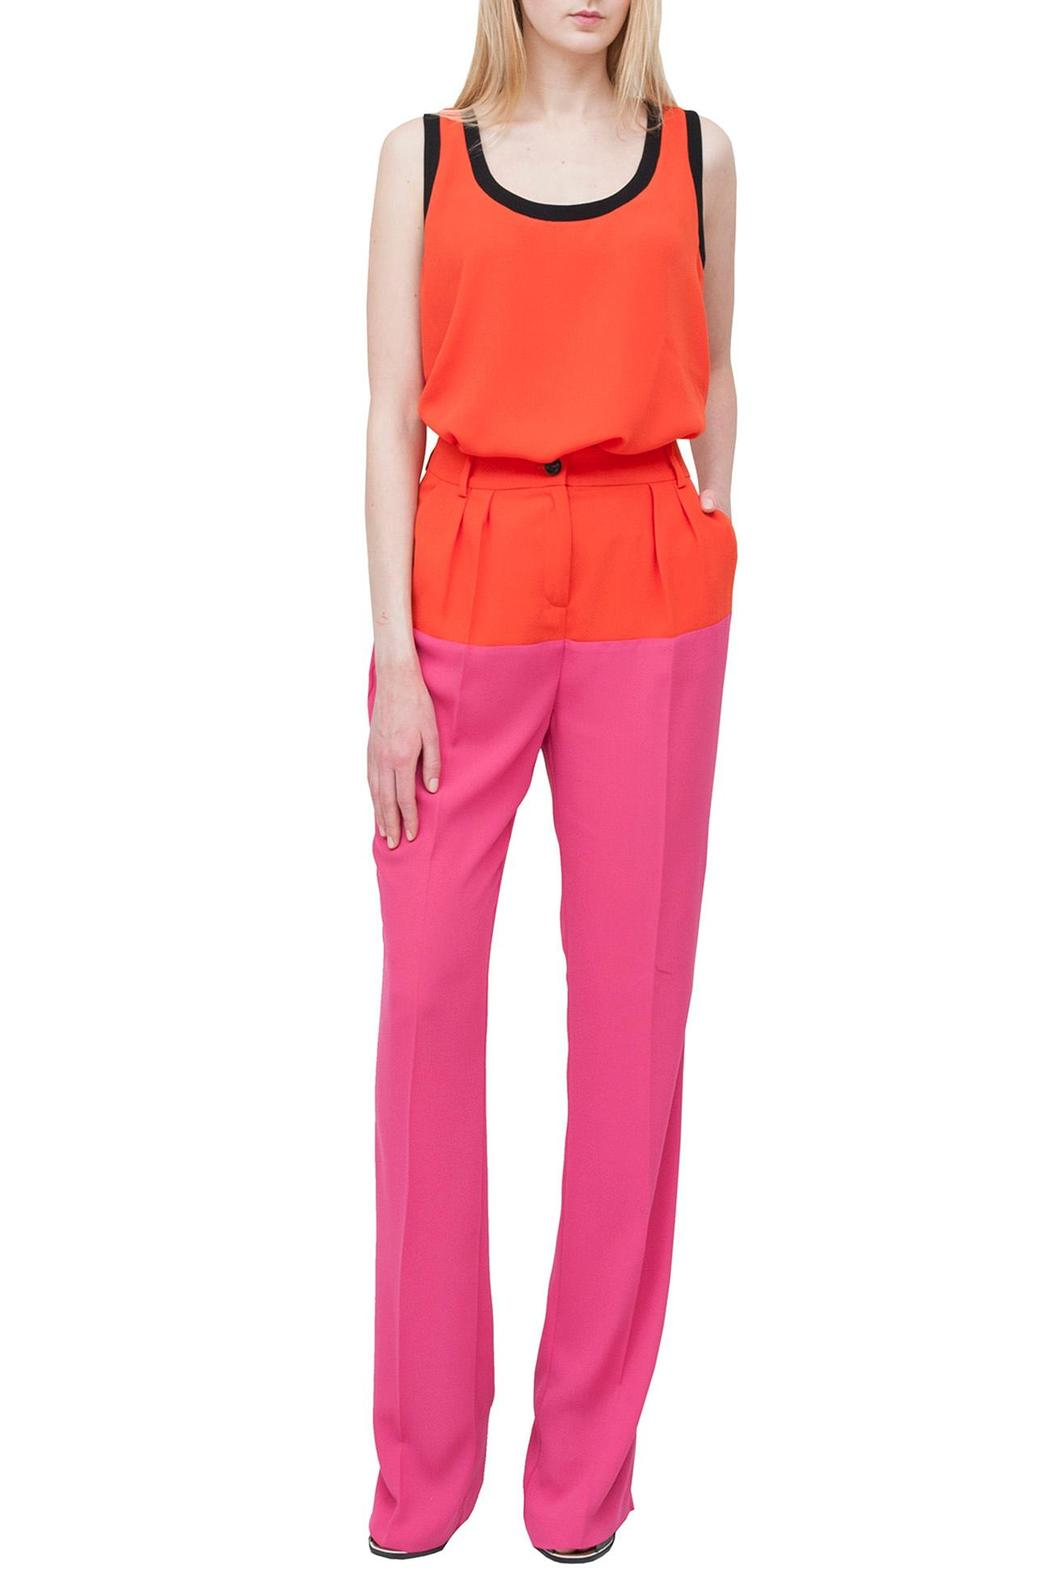 Cavalli Class Pink Stylish Trousers - Front Cropped Image